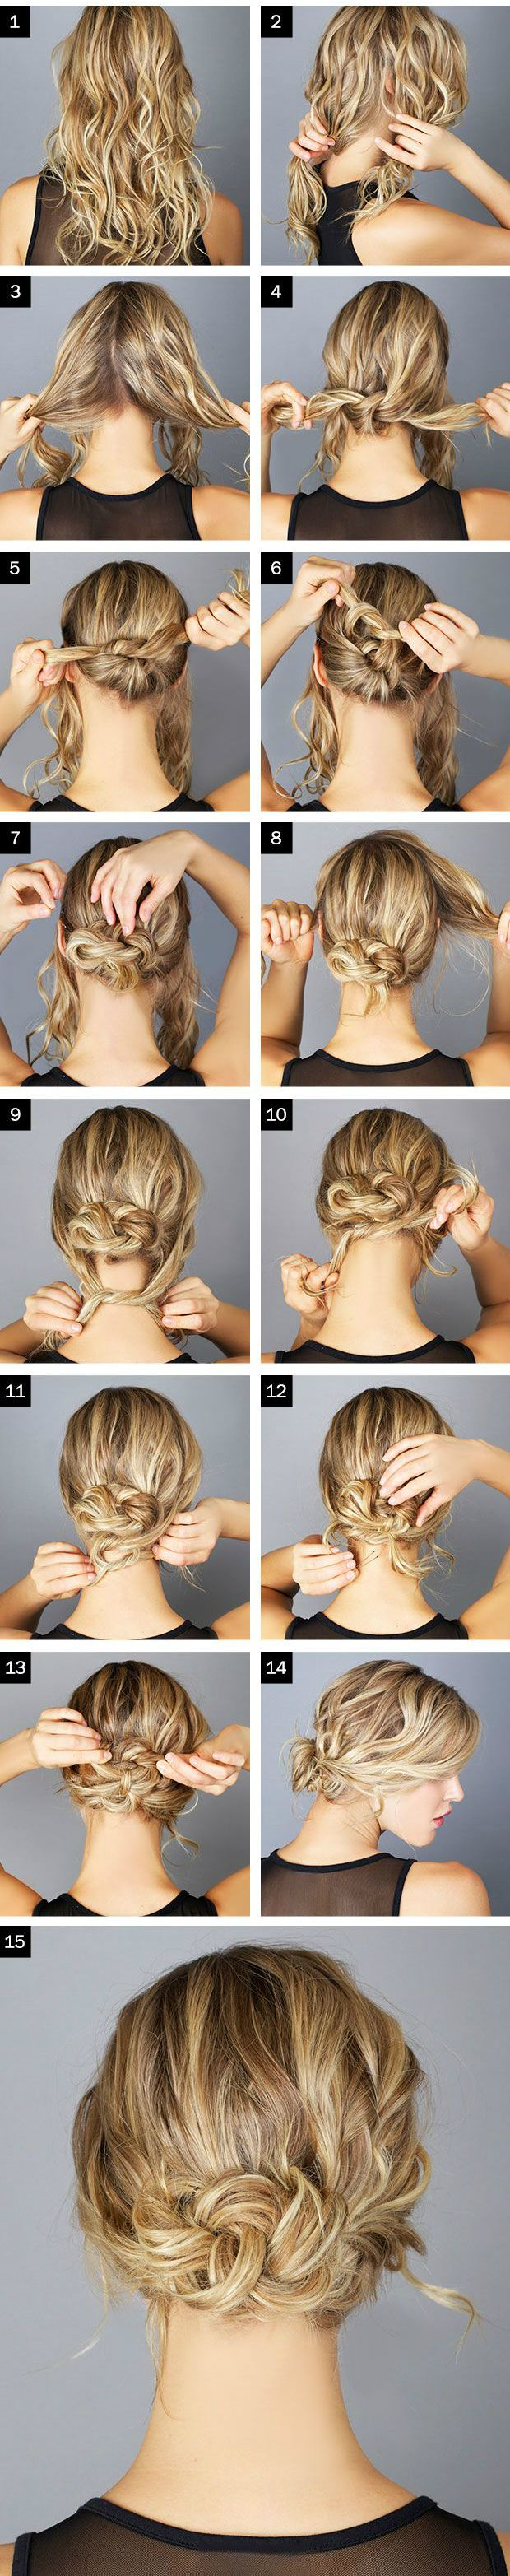 A messy bun is a great style to try on second day hair. If your hair is freshly washed we recommend a product like Kevin Murphy Hair Resort Spray or Sachajuan S